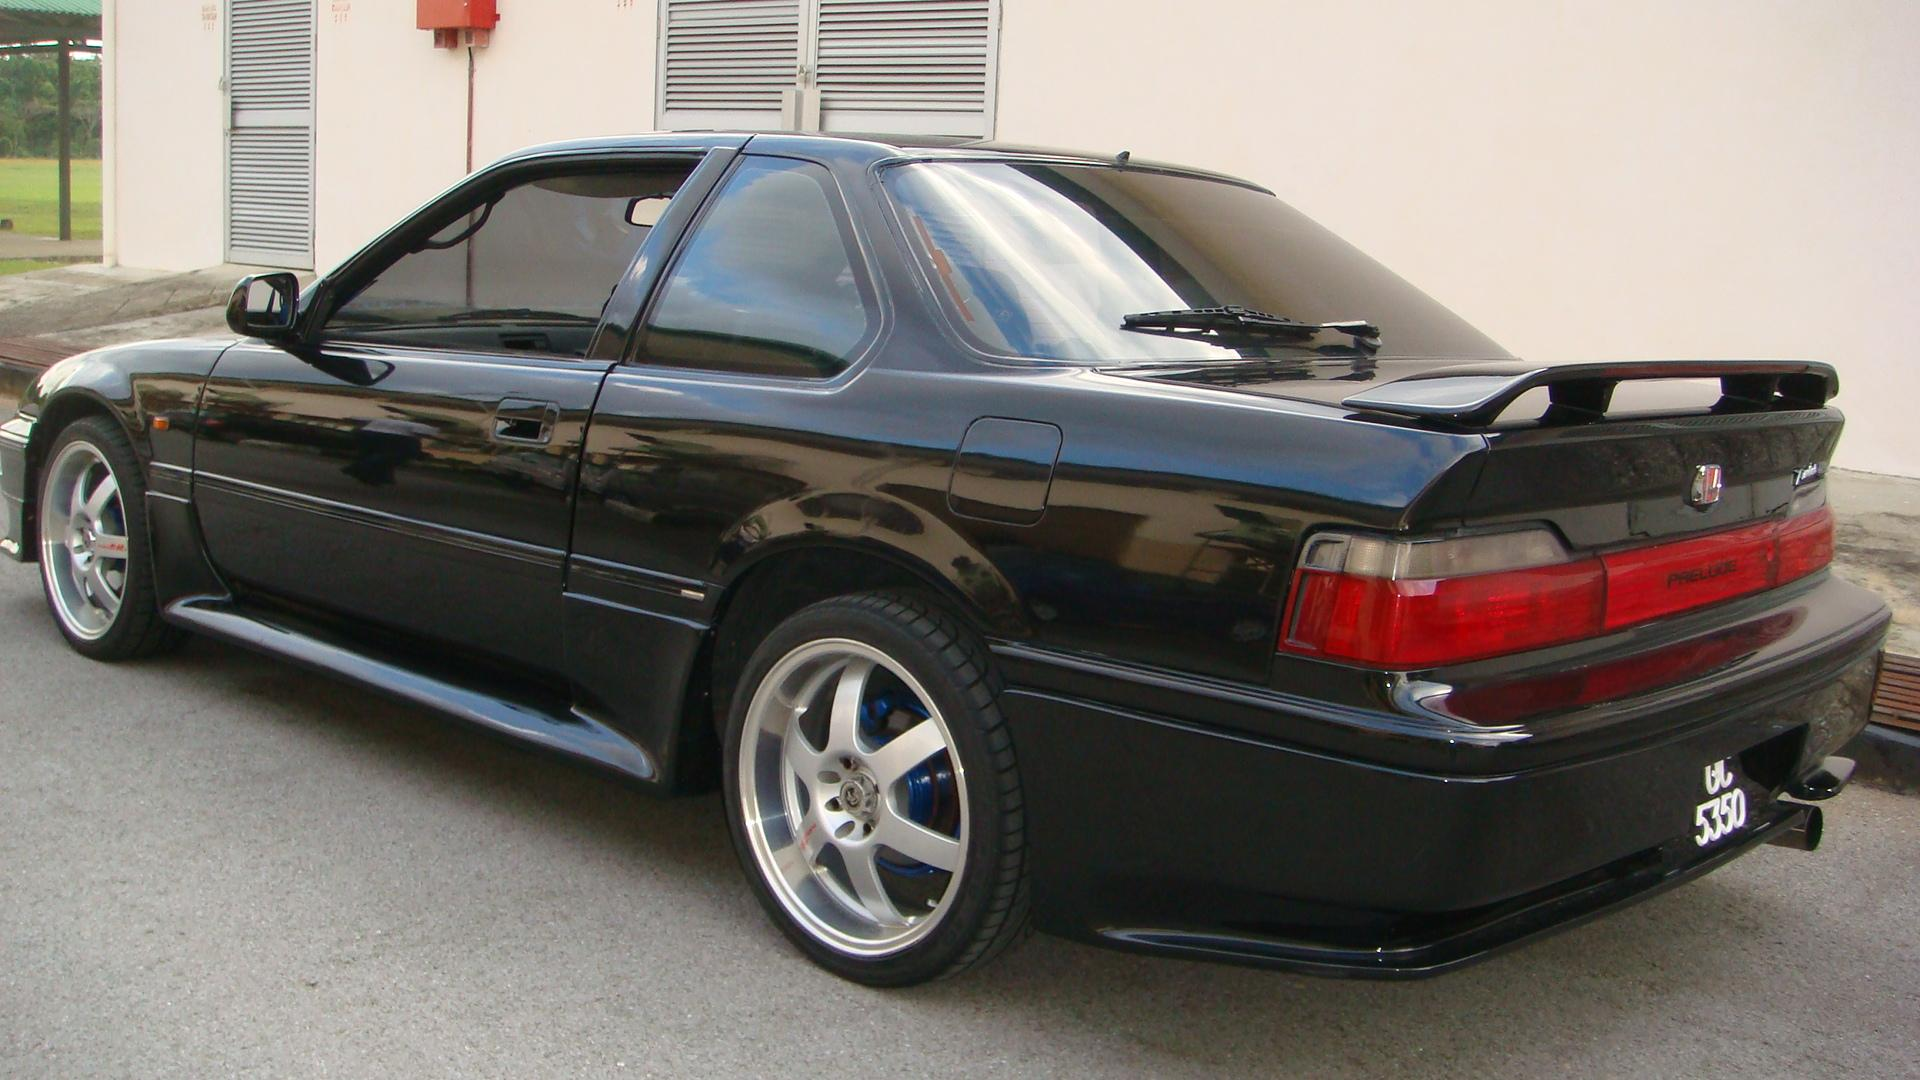 inteR 1988 Honda Prelude Specs, Photos, Modification Info at CarDomain